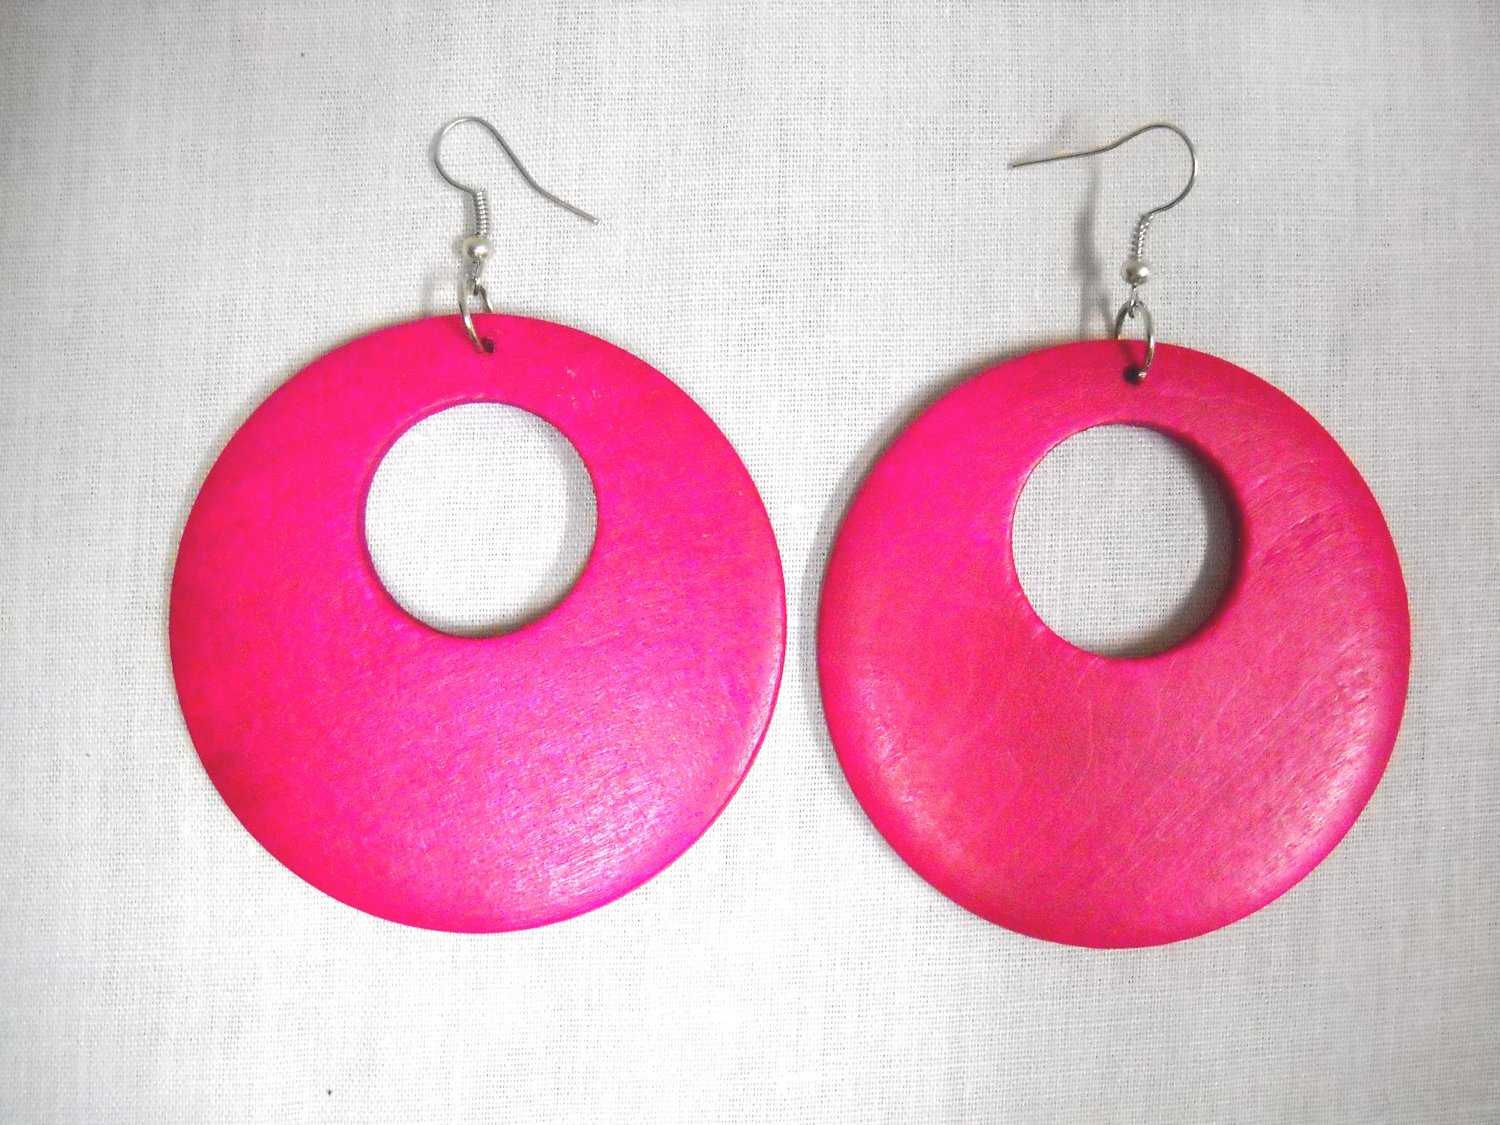 BIG SIZE LARGE HOT PINK STAIN WOOD ROUND EXOTIC DANGLING FLAT HOOP EARRINGS